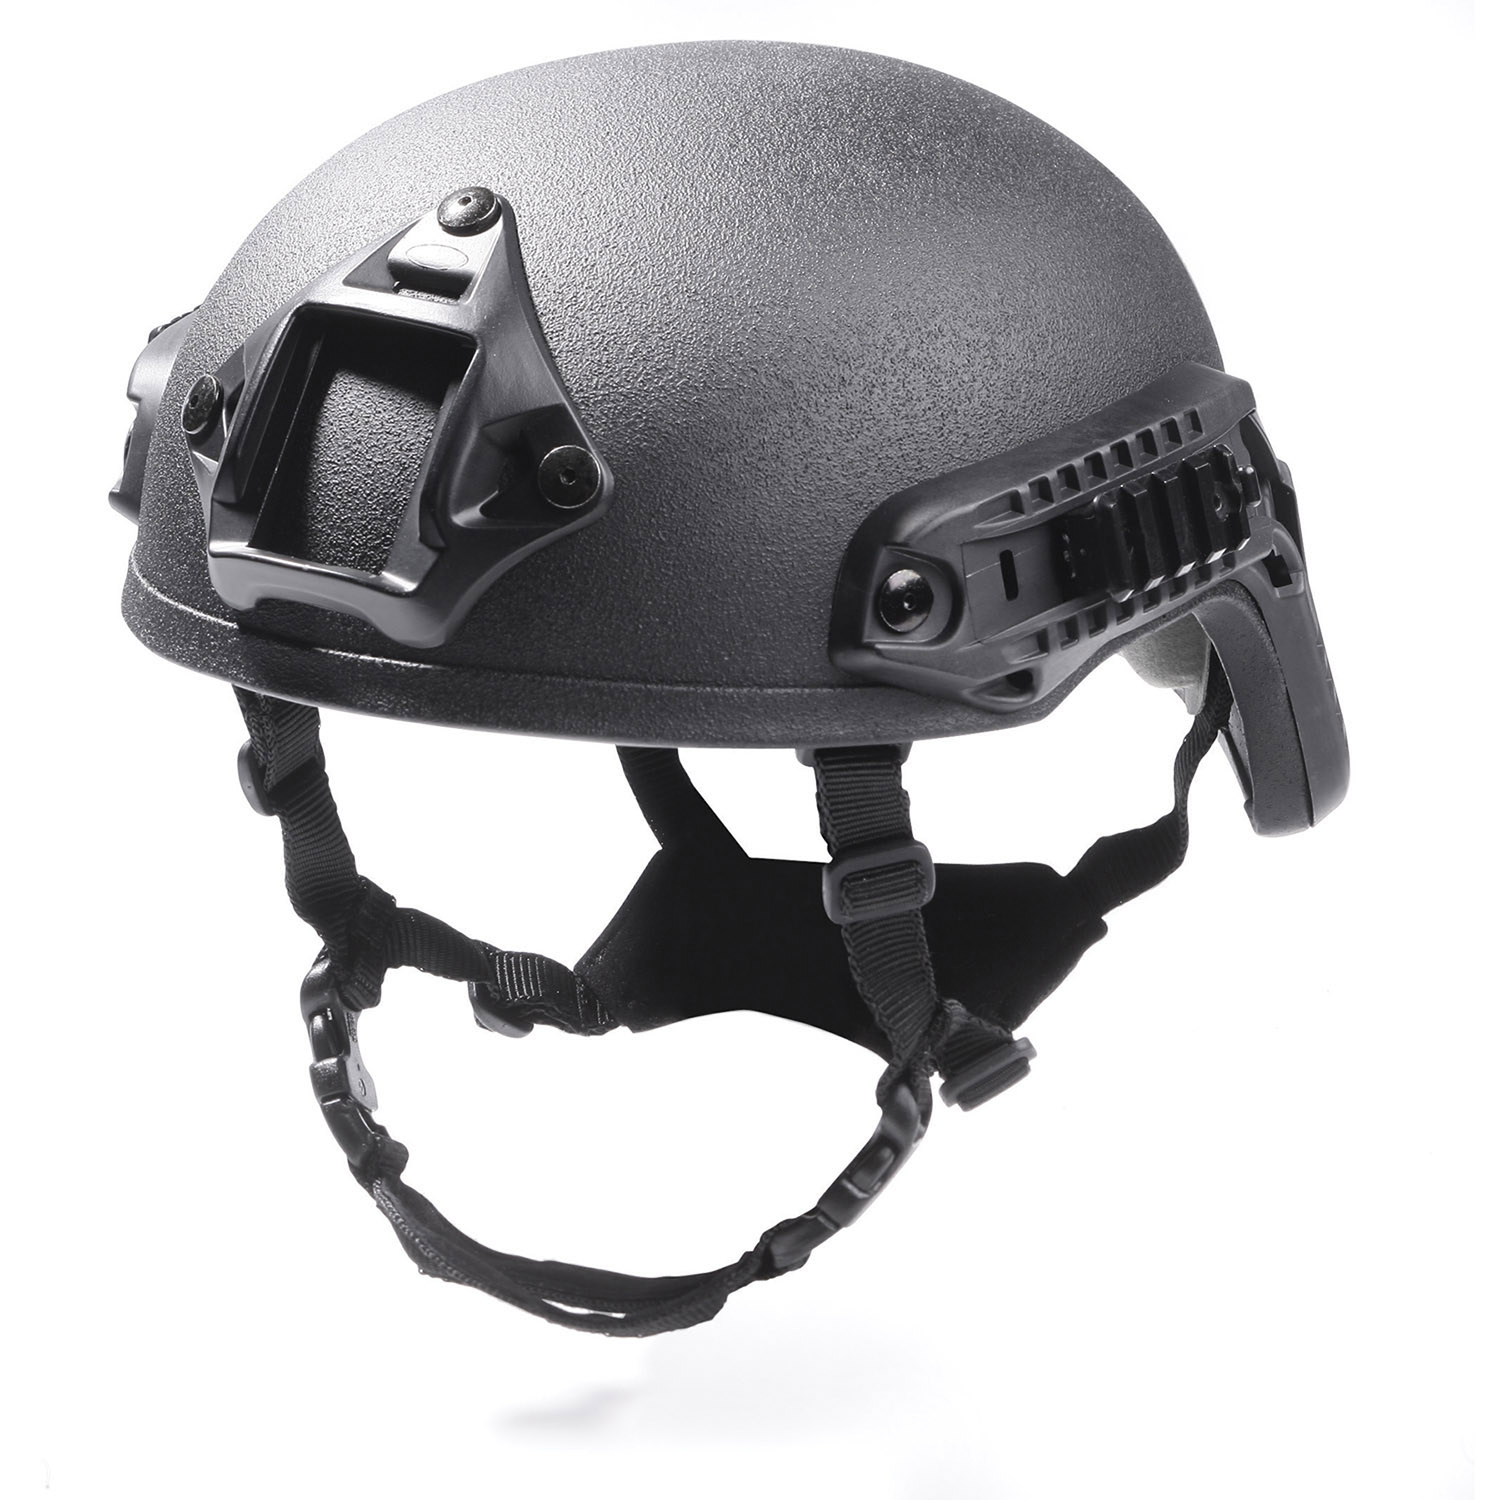 United Shield Spec Ops Delta-Gen II level IIIA Helmet